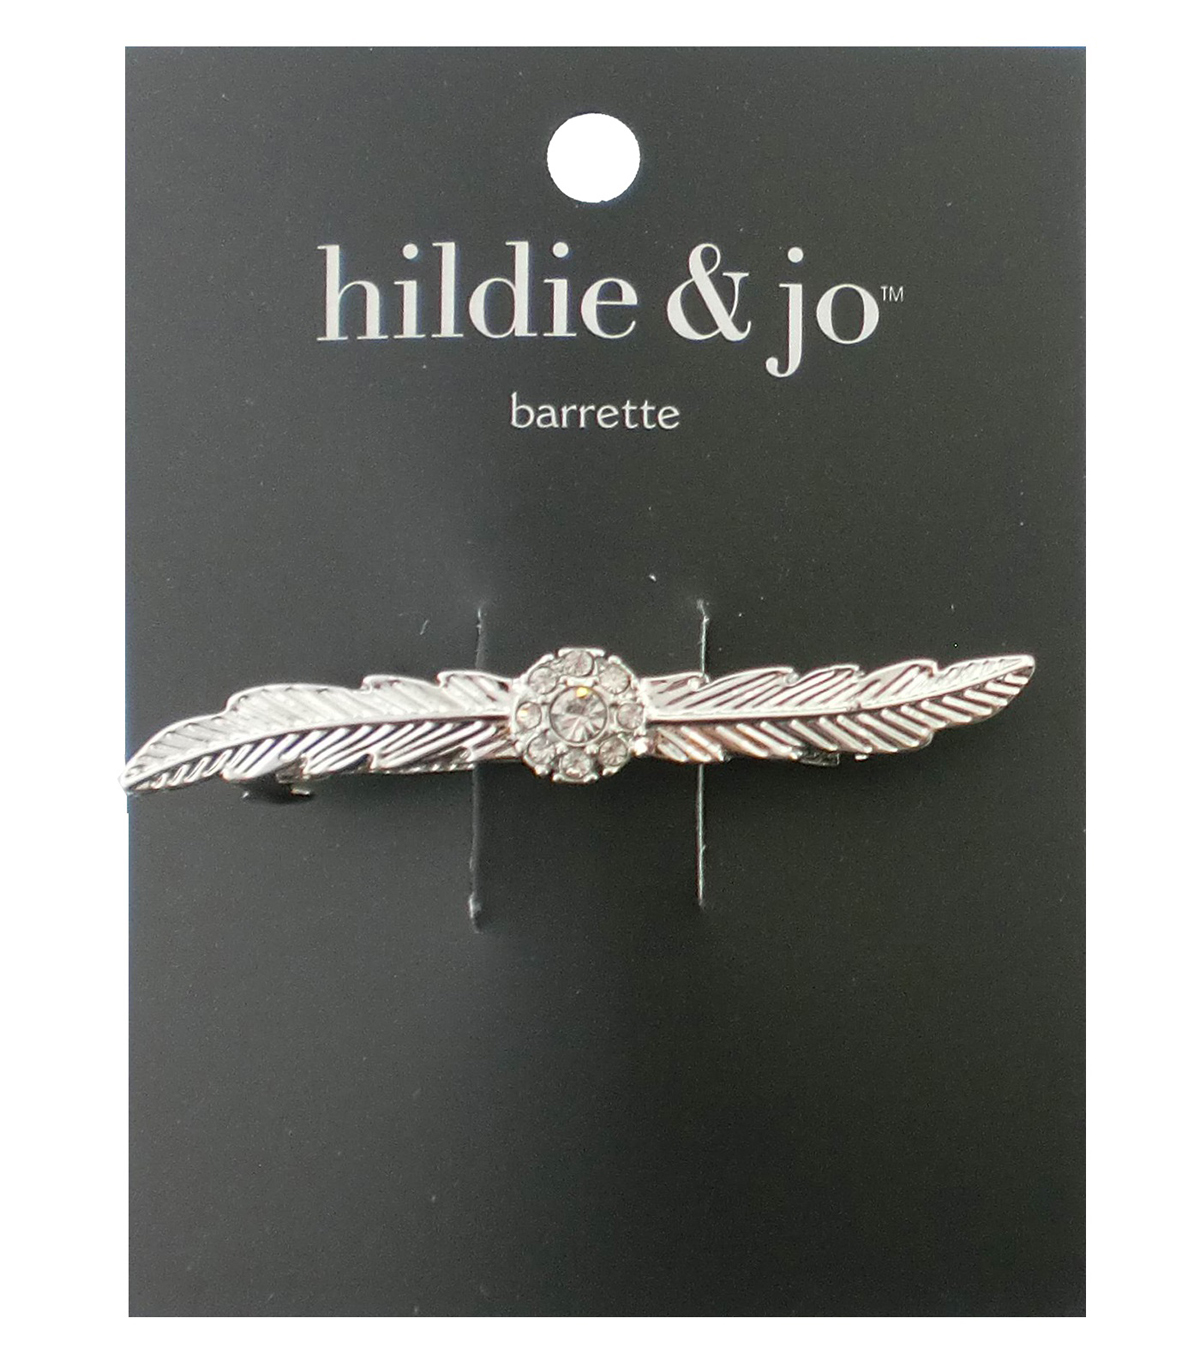 hildie & jo Leaves Gold Barrette-Clear Crystals